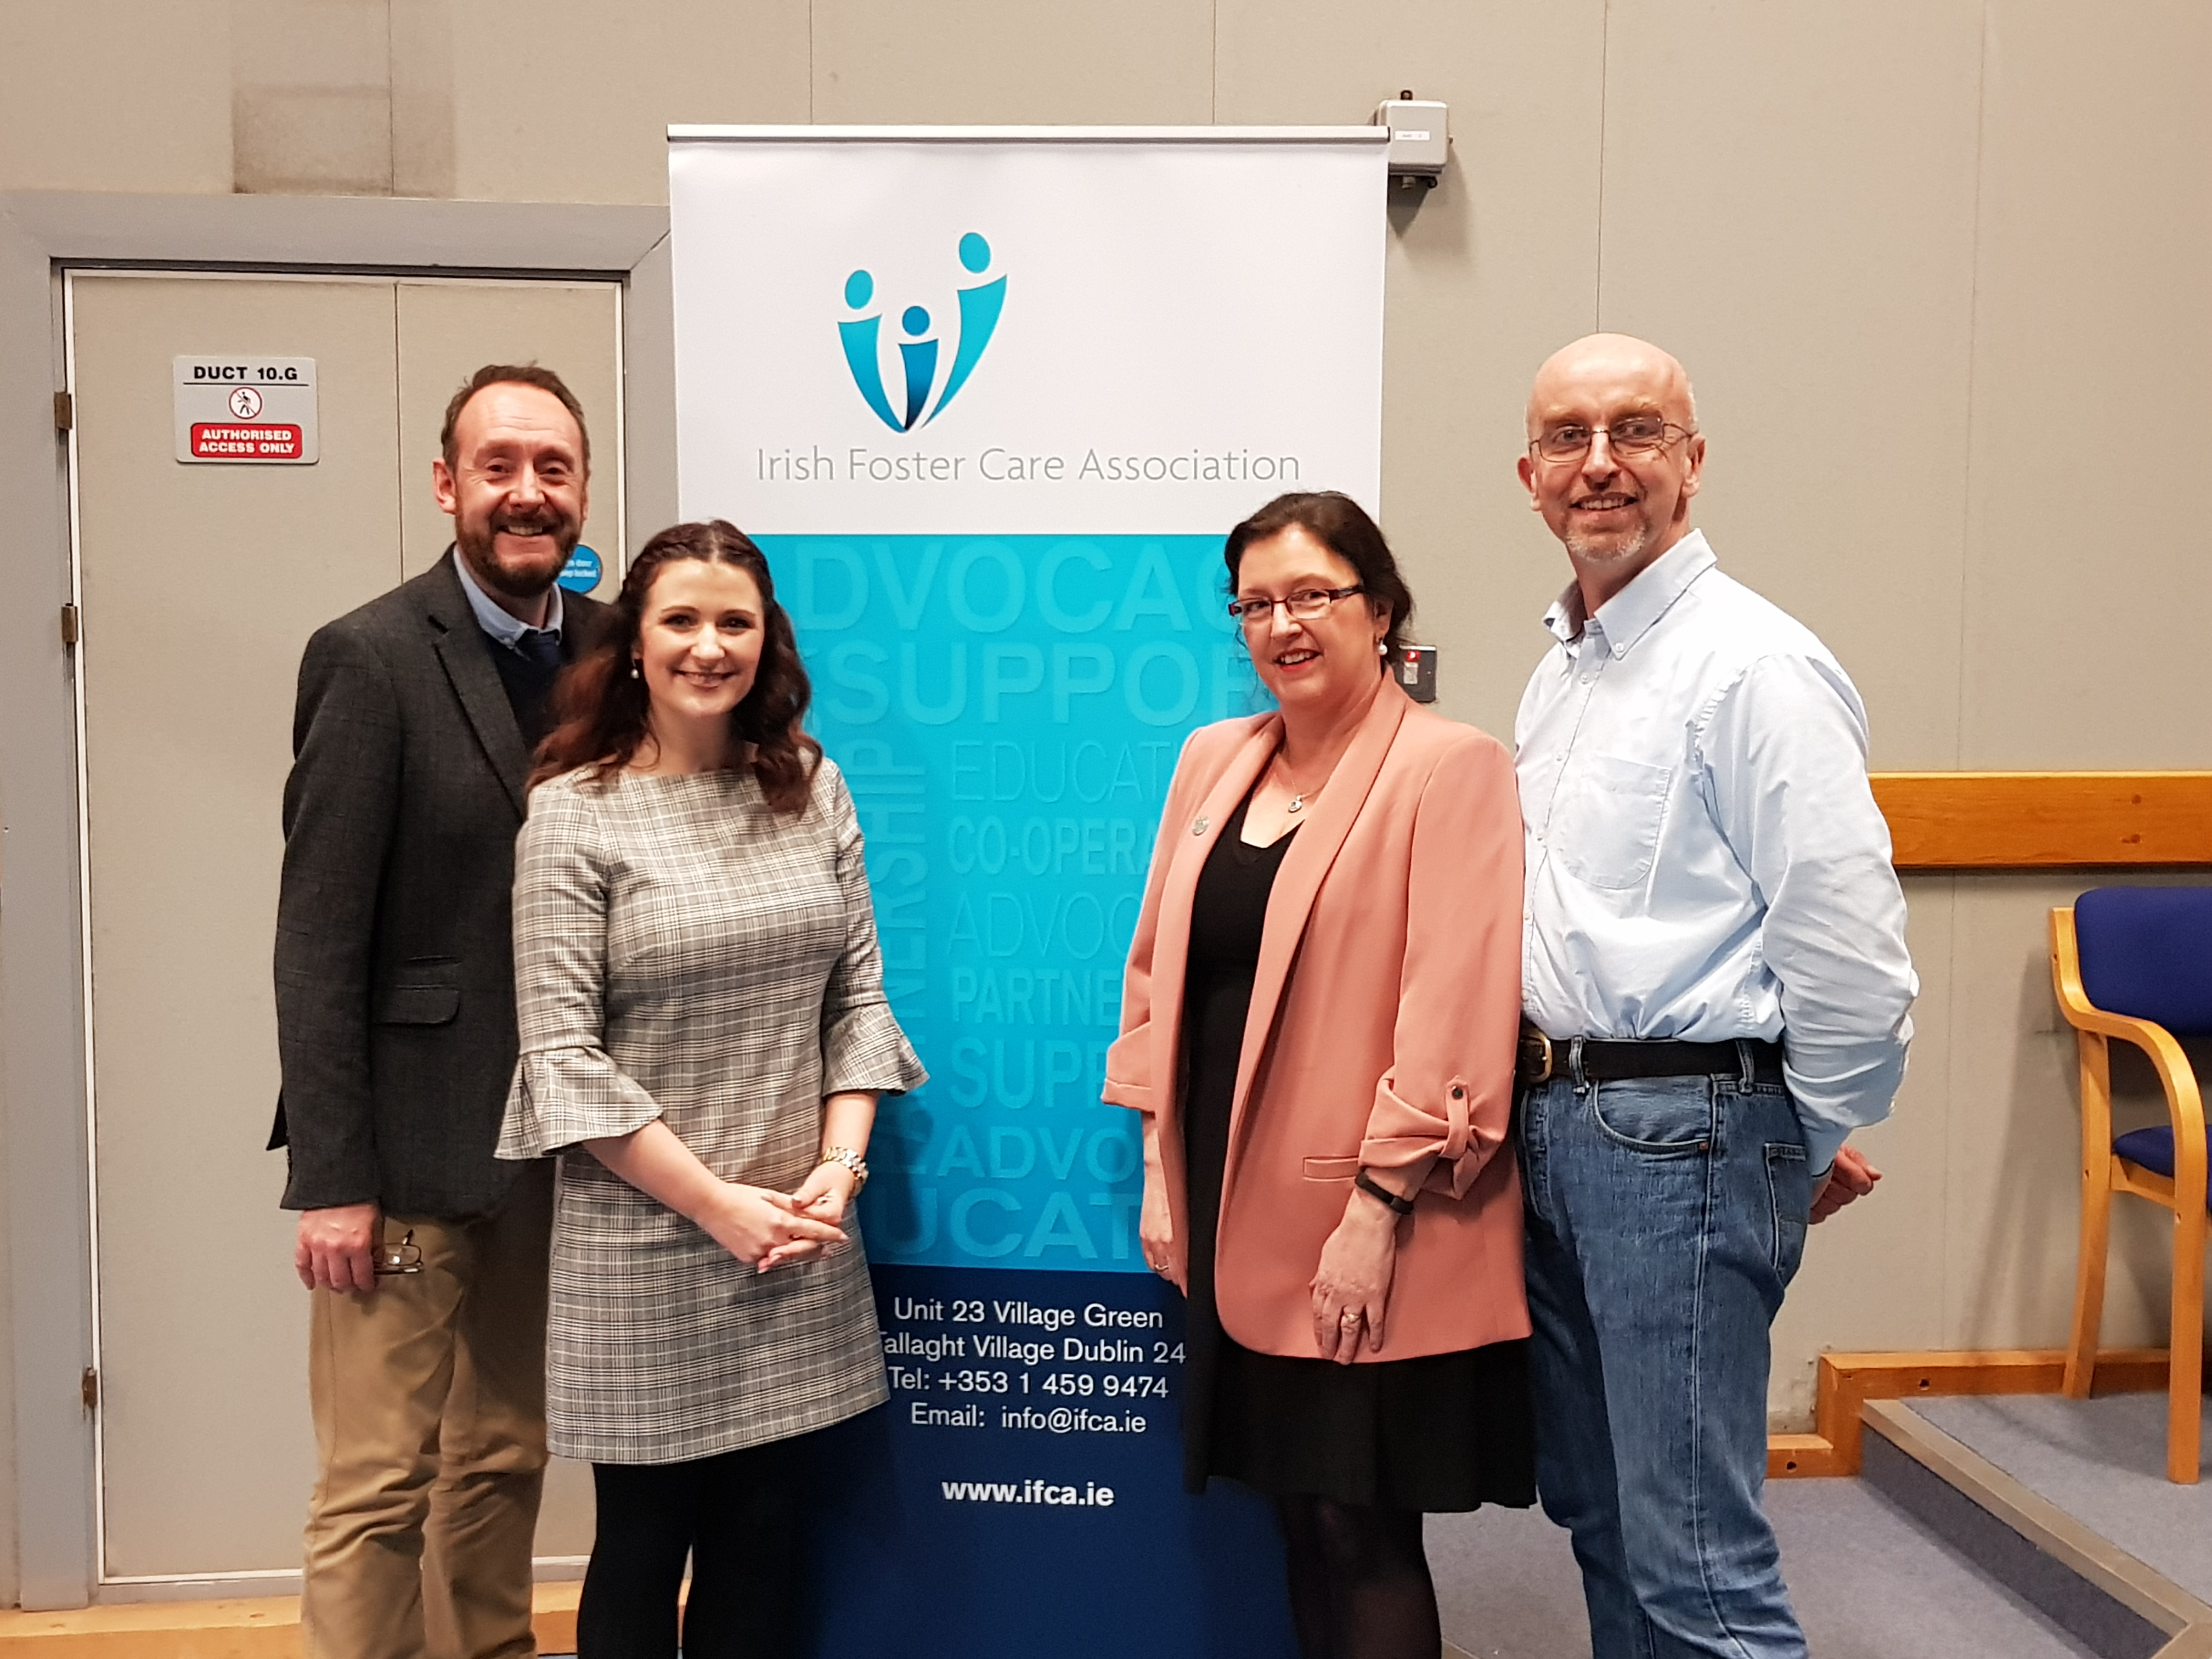 Pictured are: Peter O' Toole from IFCA/IAIA, Danielle Douglas, Dr Katherine Cagney and John Byrne all lecturers in the School of Humanities.